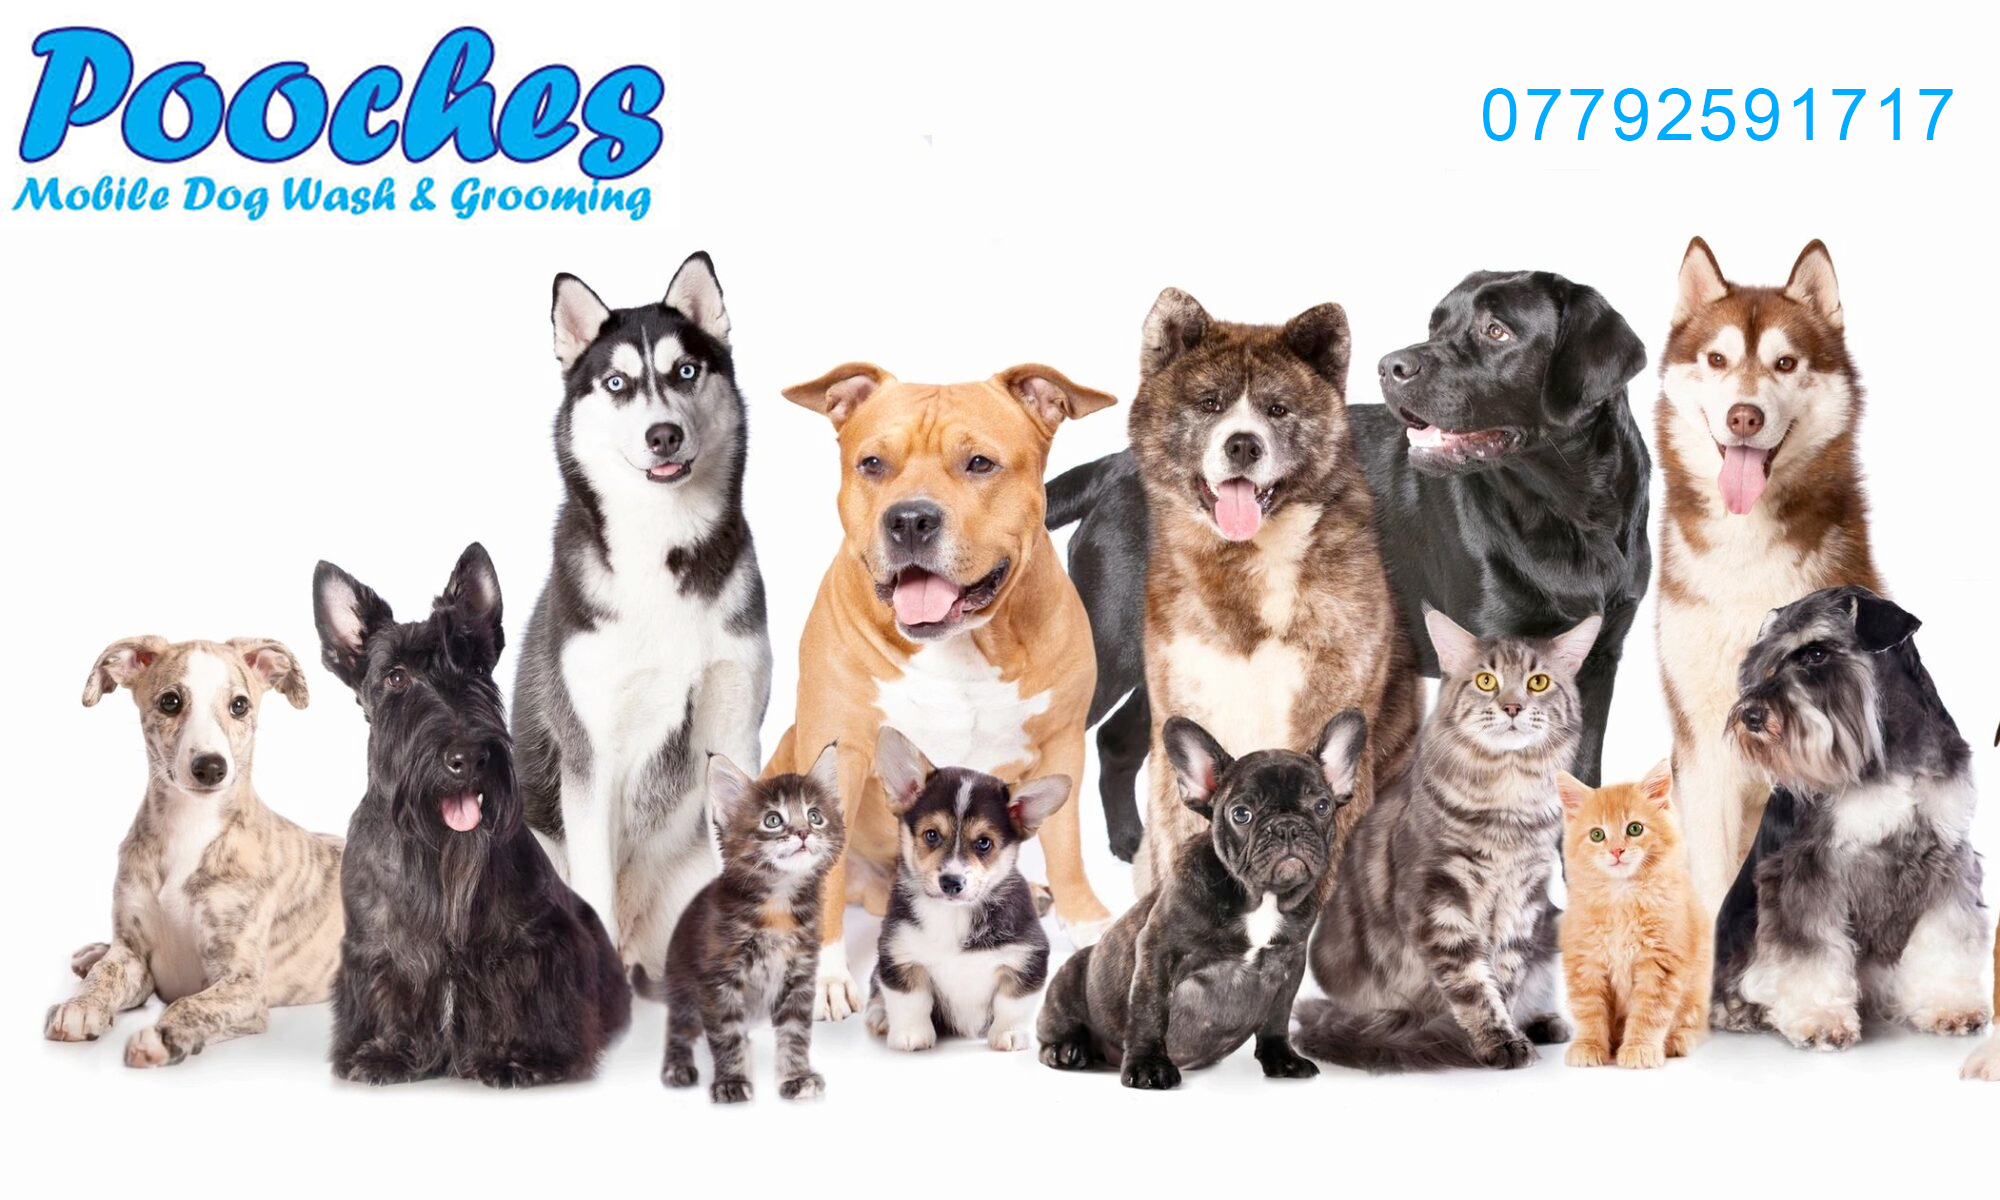 Pooches Mobile Doggrooming